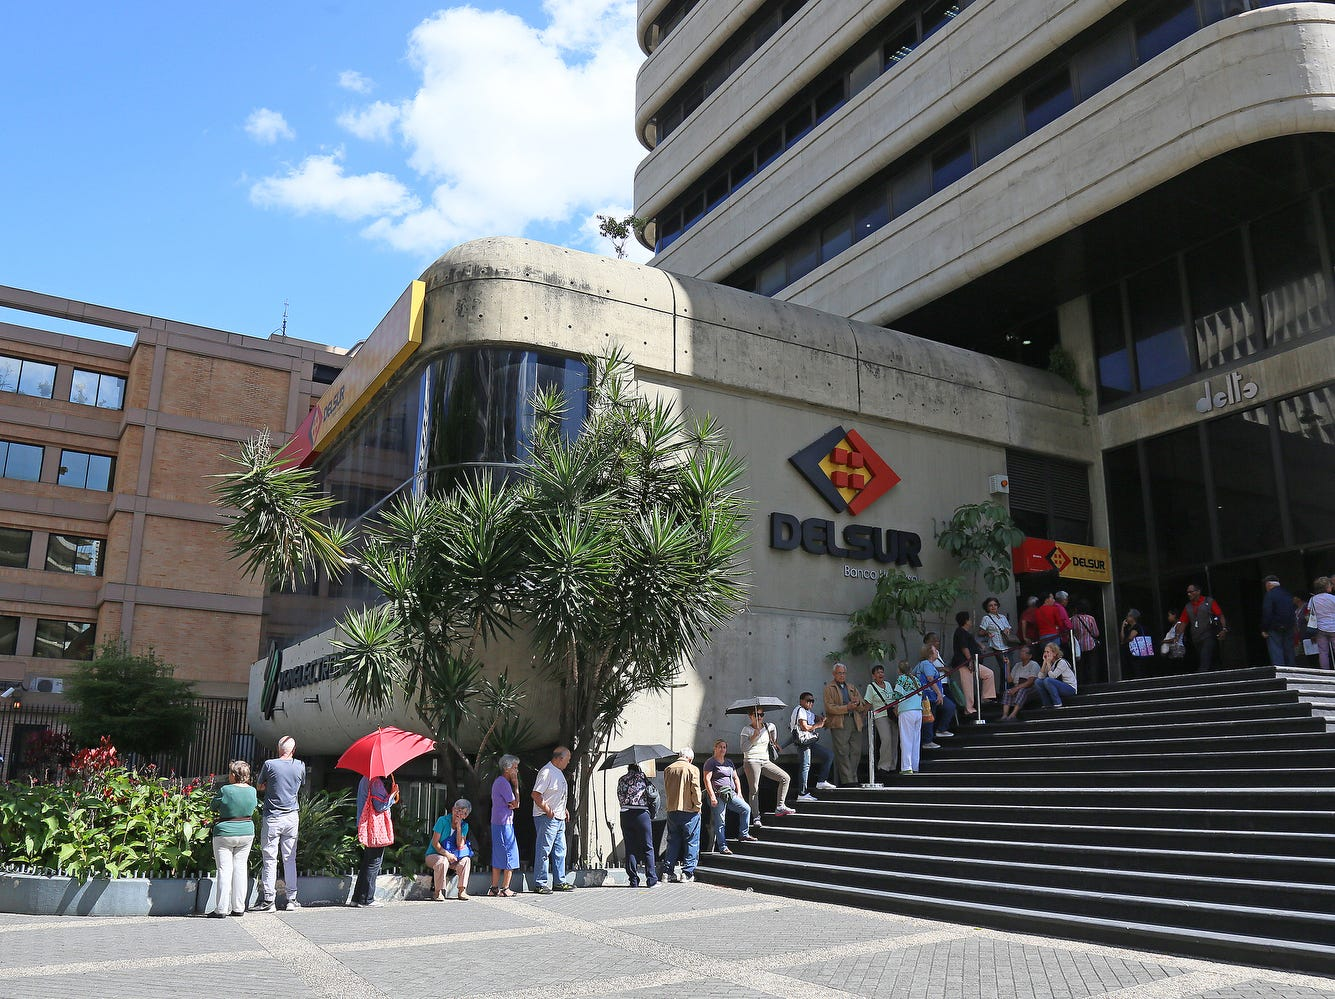 Retrired people wait in a line at Delsur Bank to get their pensions paid on Jan. 24, 2019 in Caracas, Venezuela.